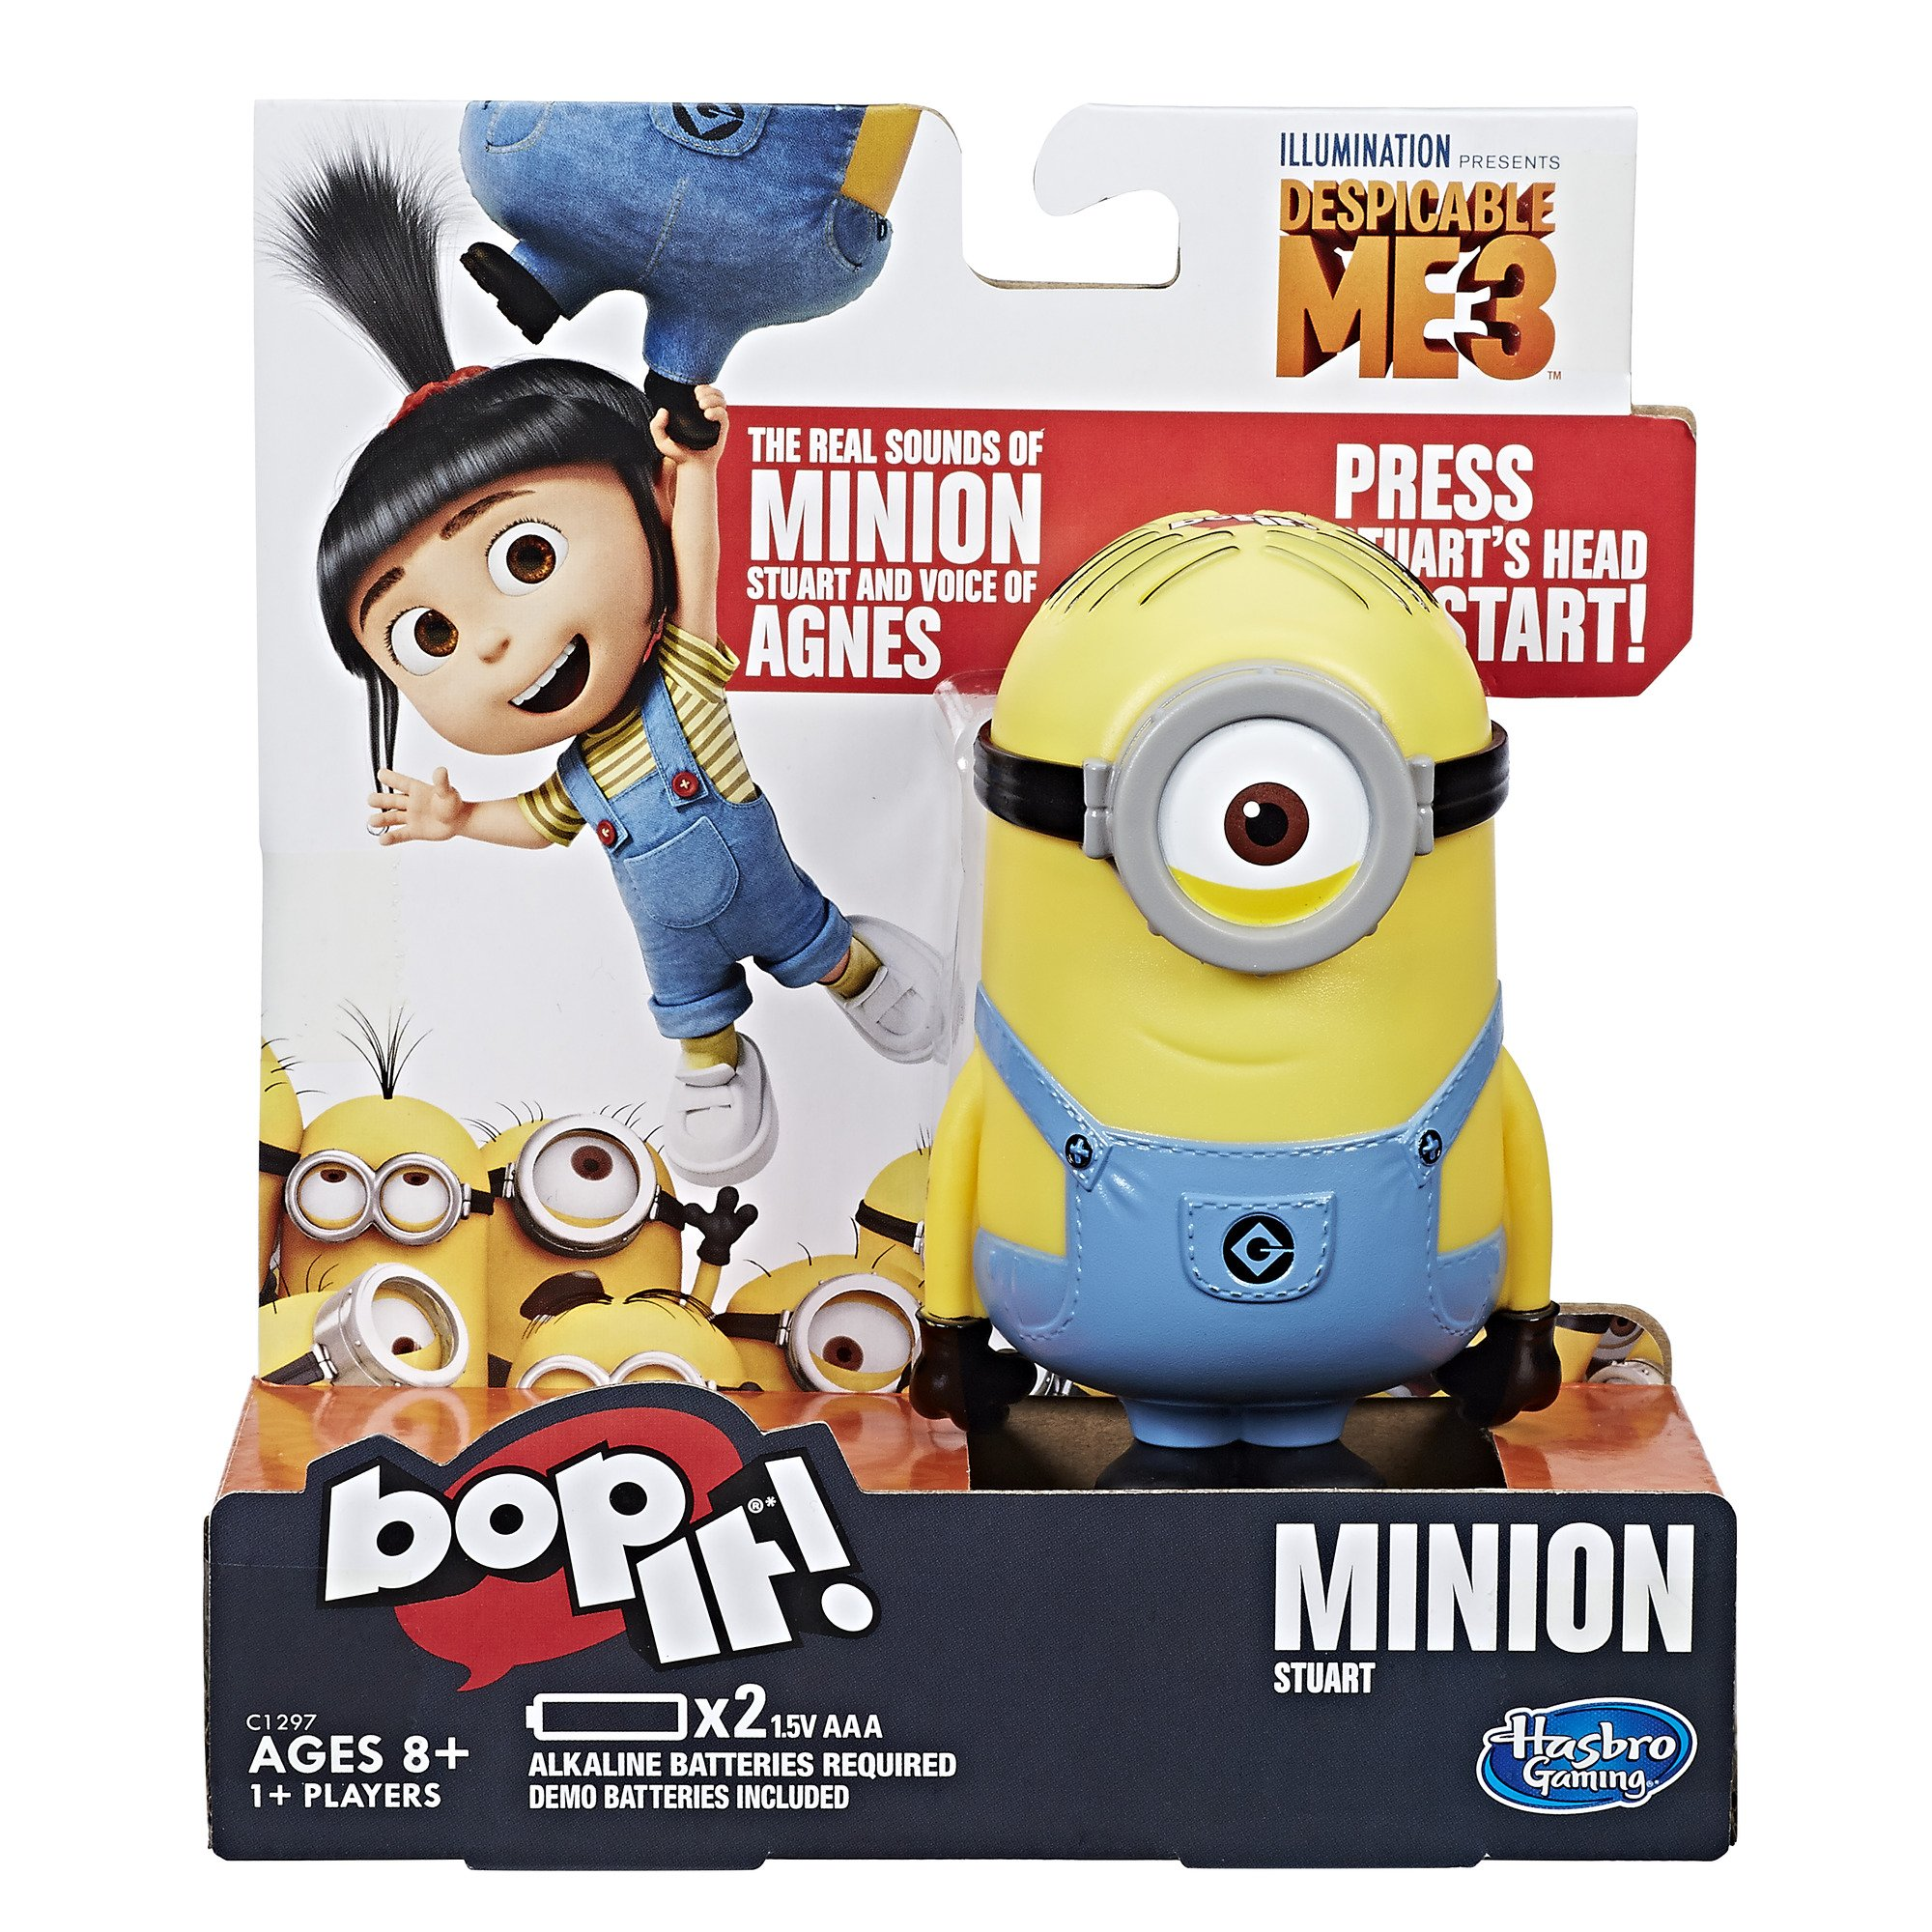 Bop It! Despicable Me Edition game by Hasbro Gaming